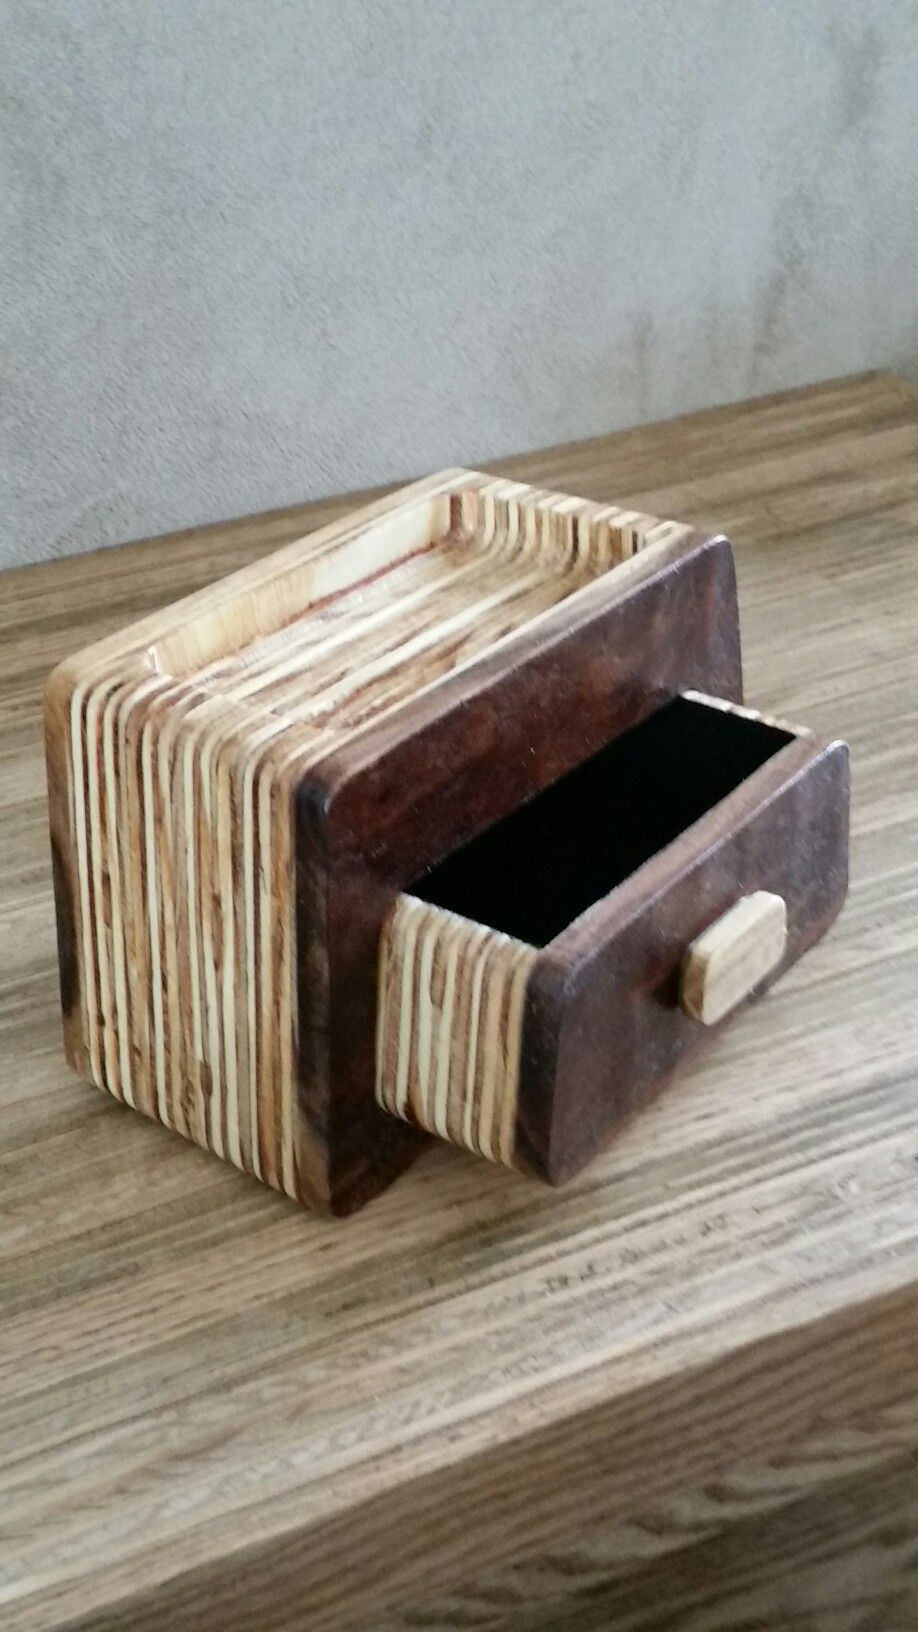 pinrick booher on home projects | bandsaw box, diy